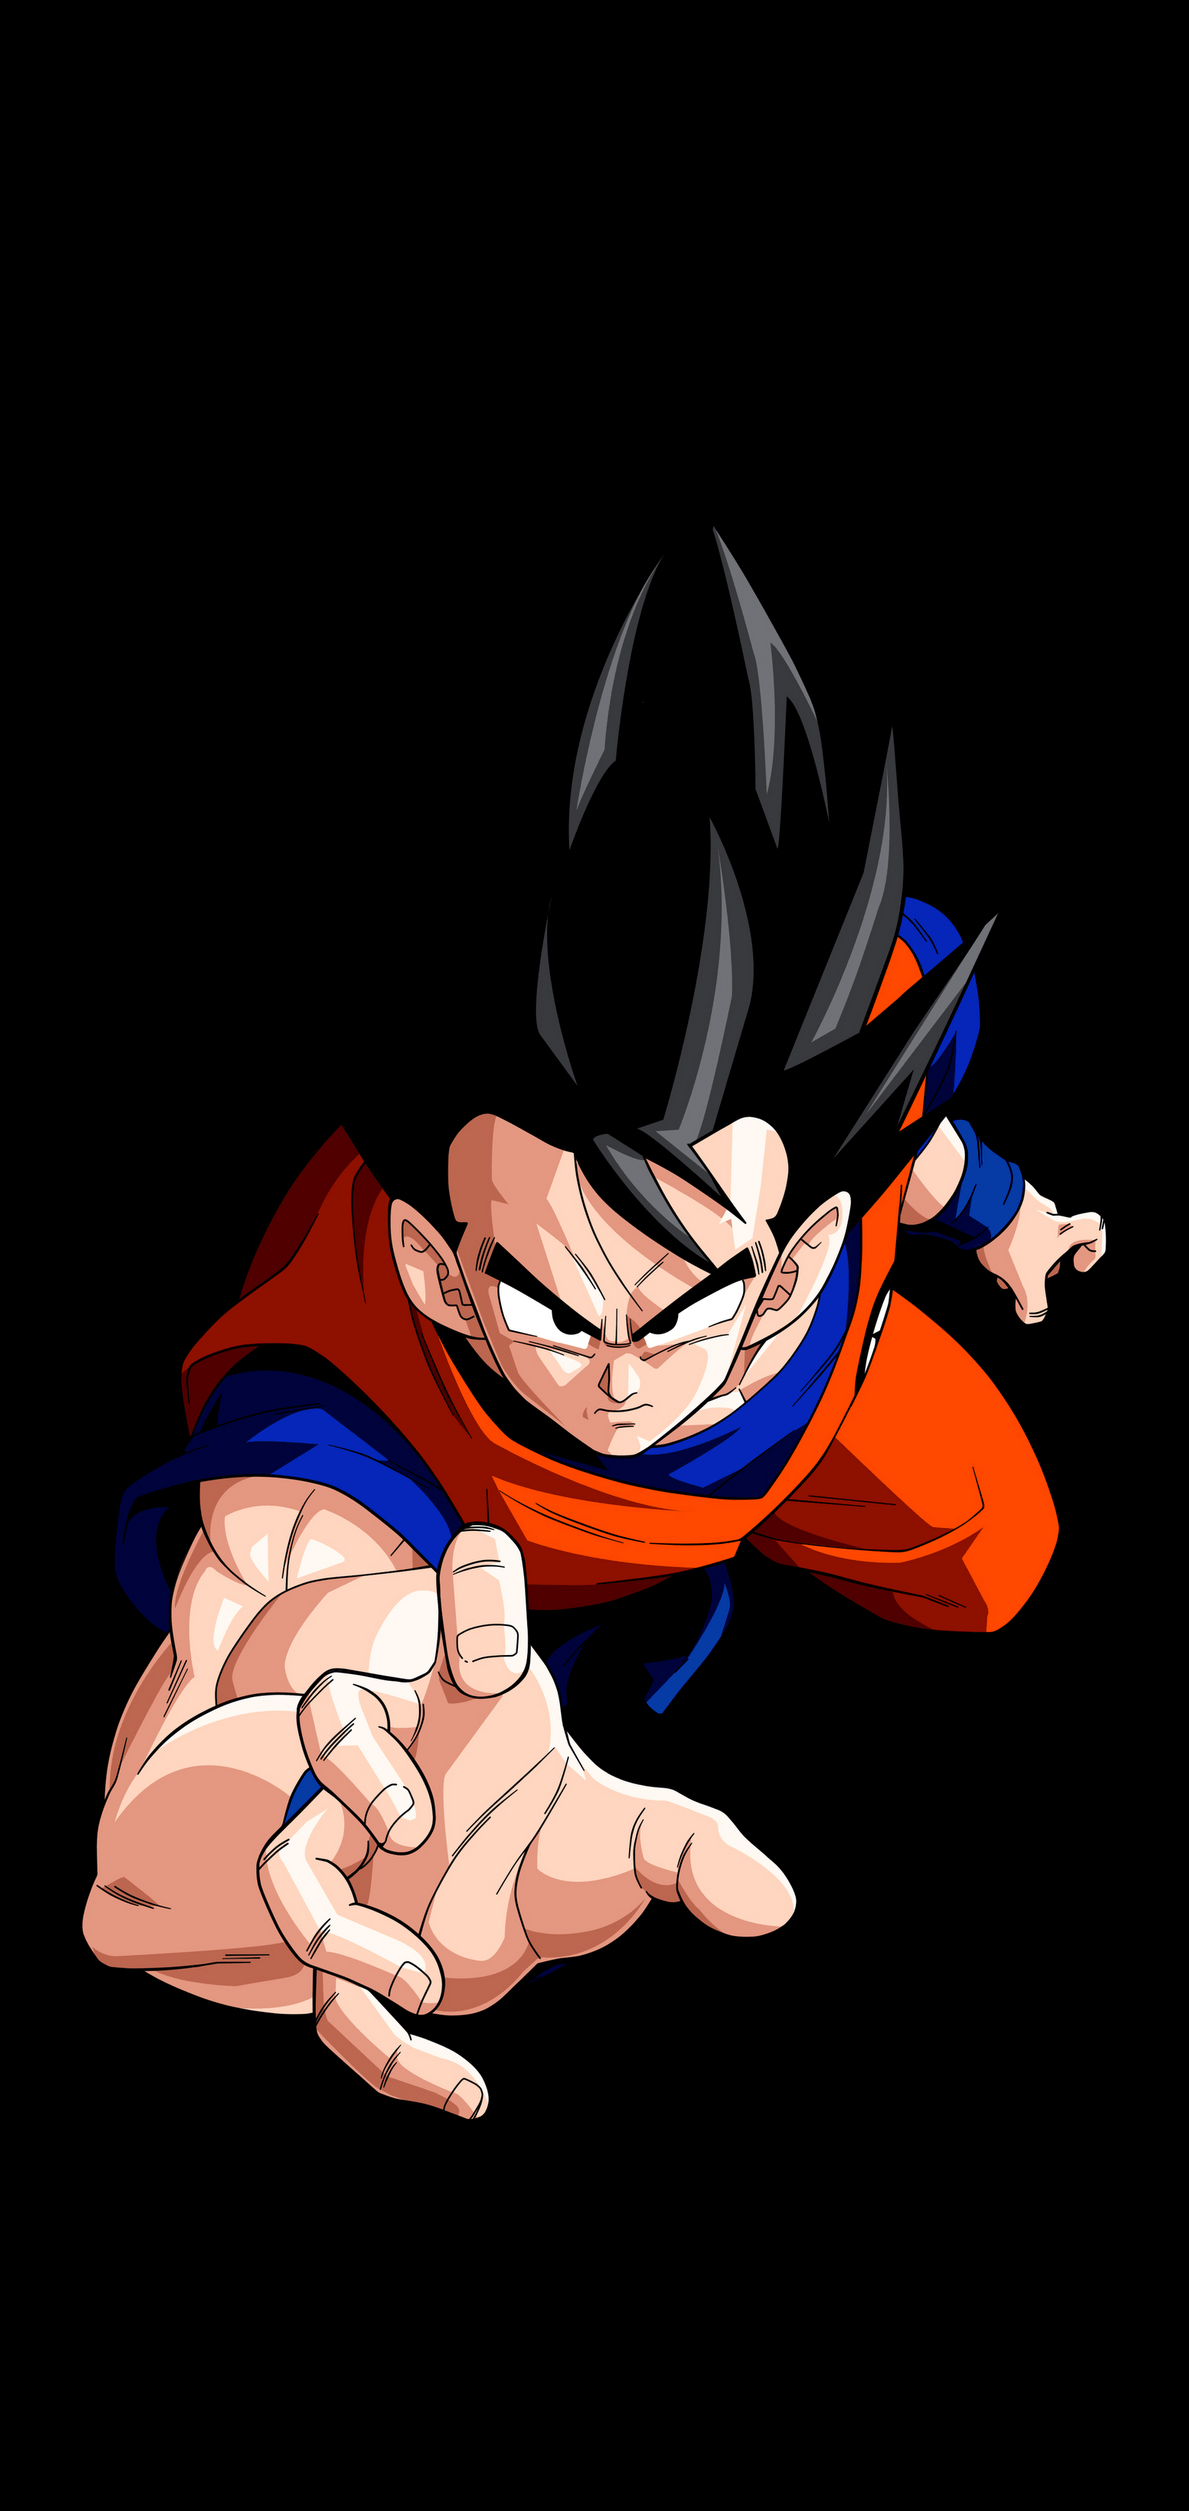 Goku Phone Wallpaper Collection Heroscreen Cool Wallpapers